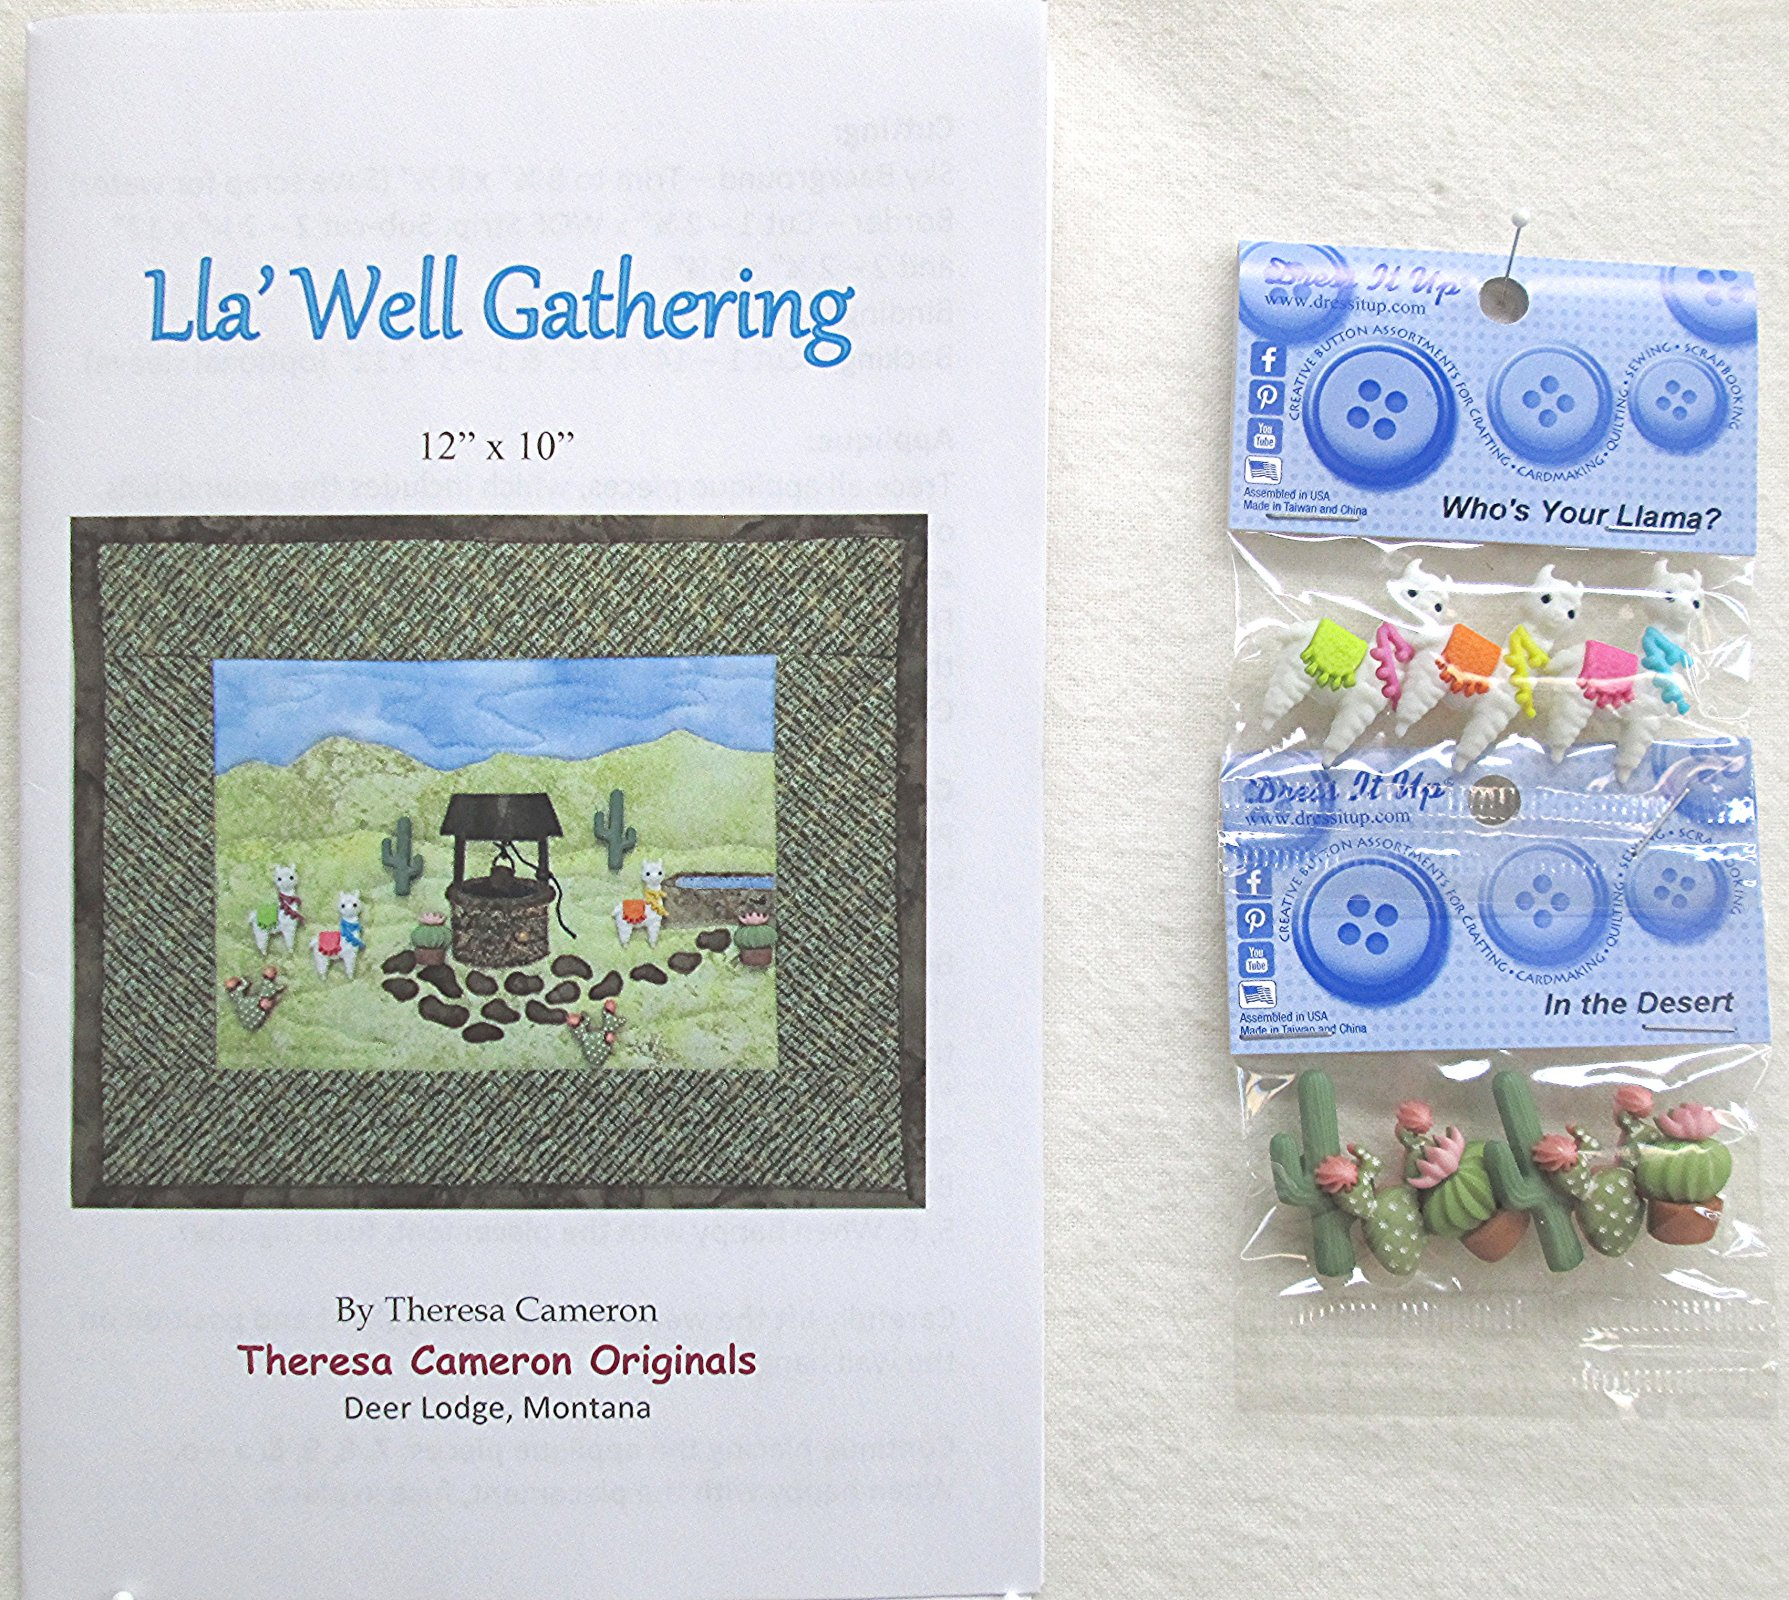 Lla' Well Gathering Pattern and Buttons